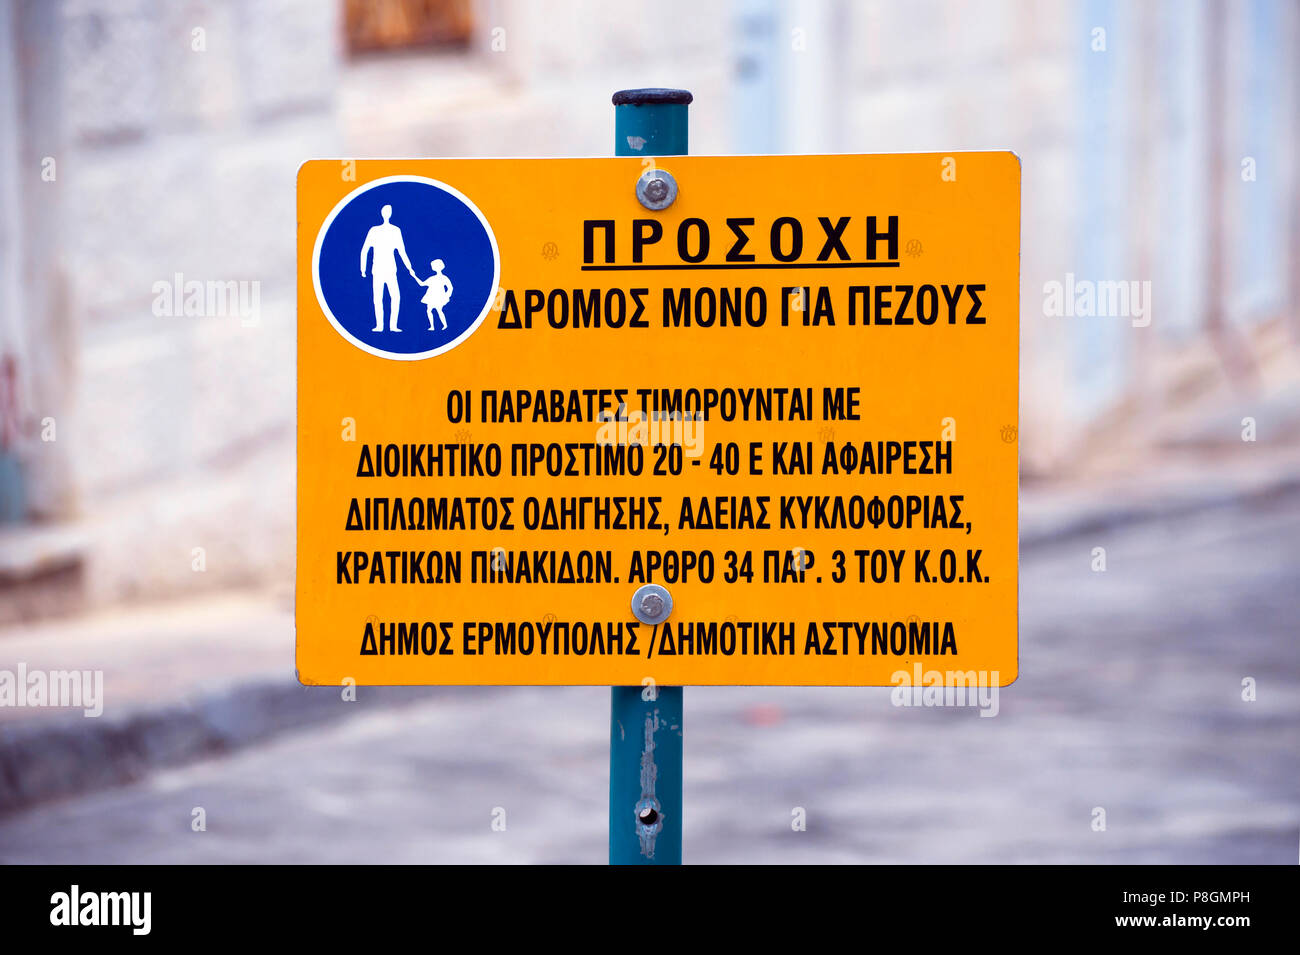 Sign in Greek for a pedestrian area in Ermoupoli, on the Greek Cyclade island of Syros. - Stock Image